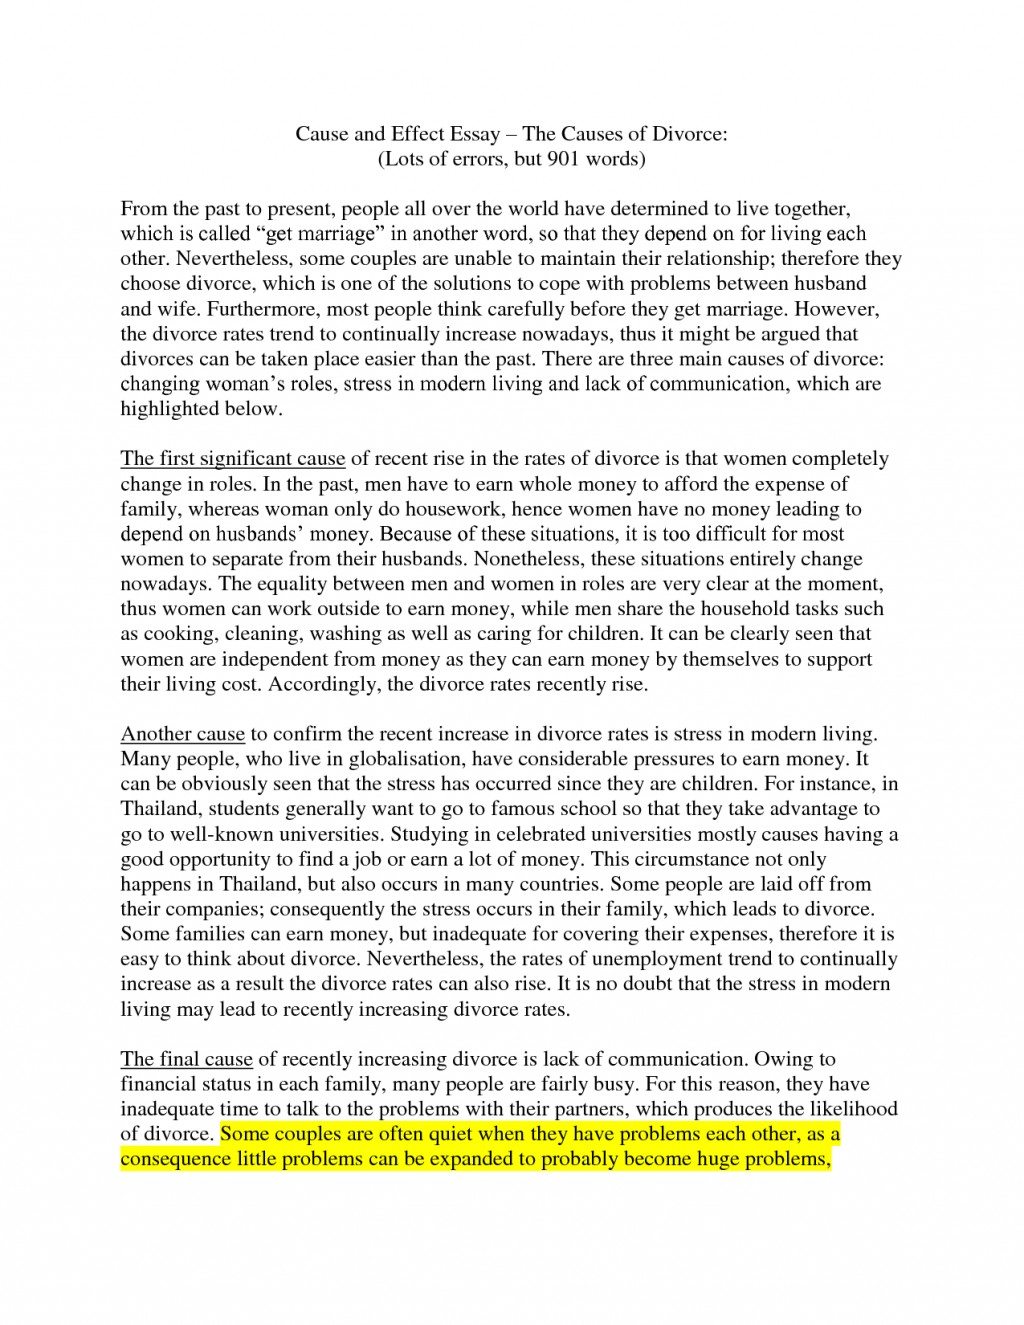 008 How To Start Cause And Effect Essay Brilliant Ideas Of Write Ethics Fabulous The Causes Effectsg Awful A Examples Step By Powerpoint Pdf Large